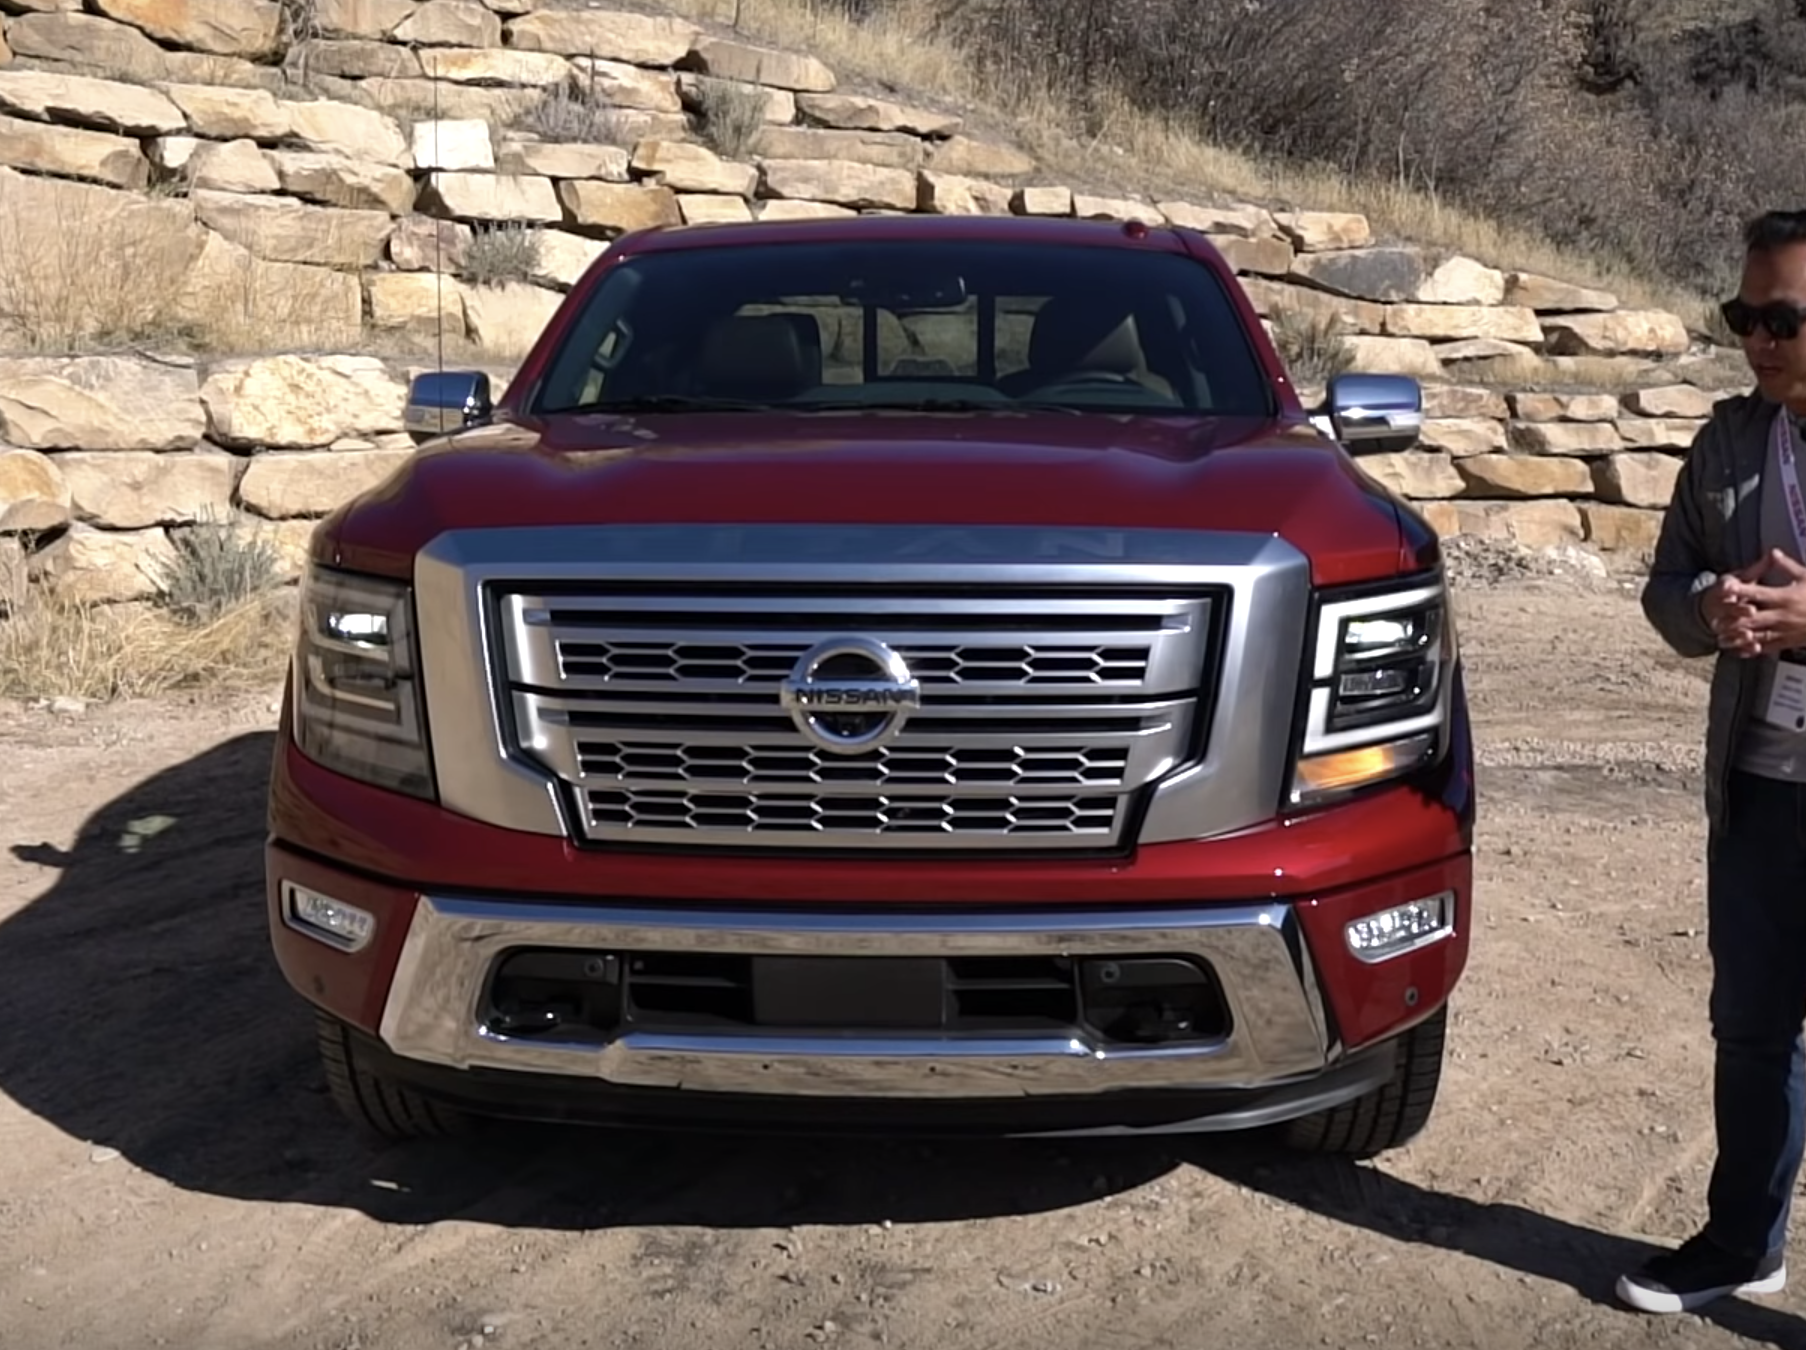 2020 Nissan Titan Do Ford And Chevy Need To Worry Yet